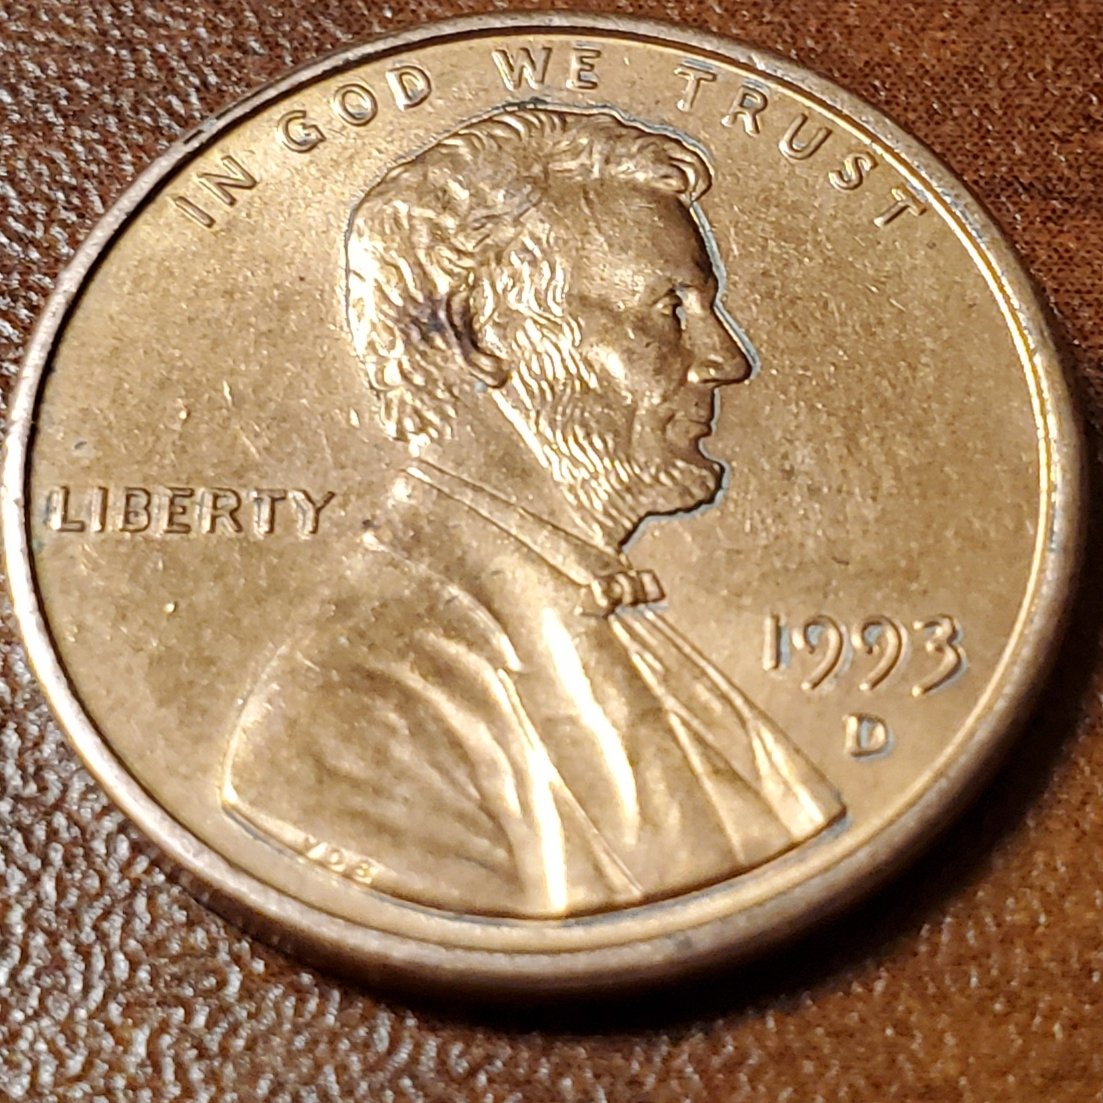 1993 D Lincoln Cent Obvious Error. Info Needed*** - Coin ...